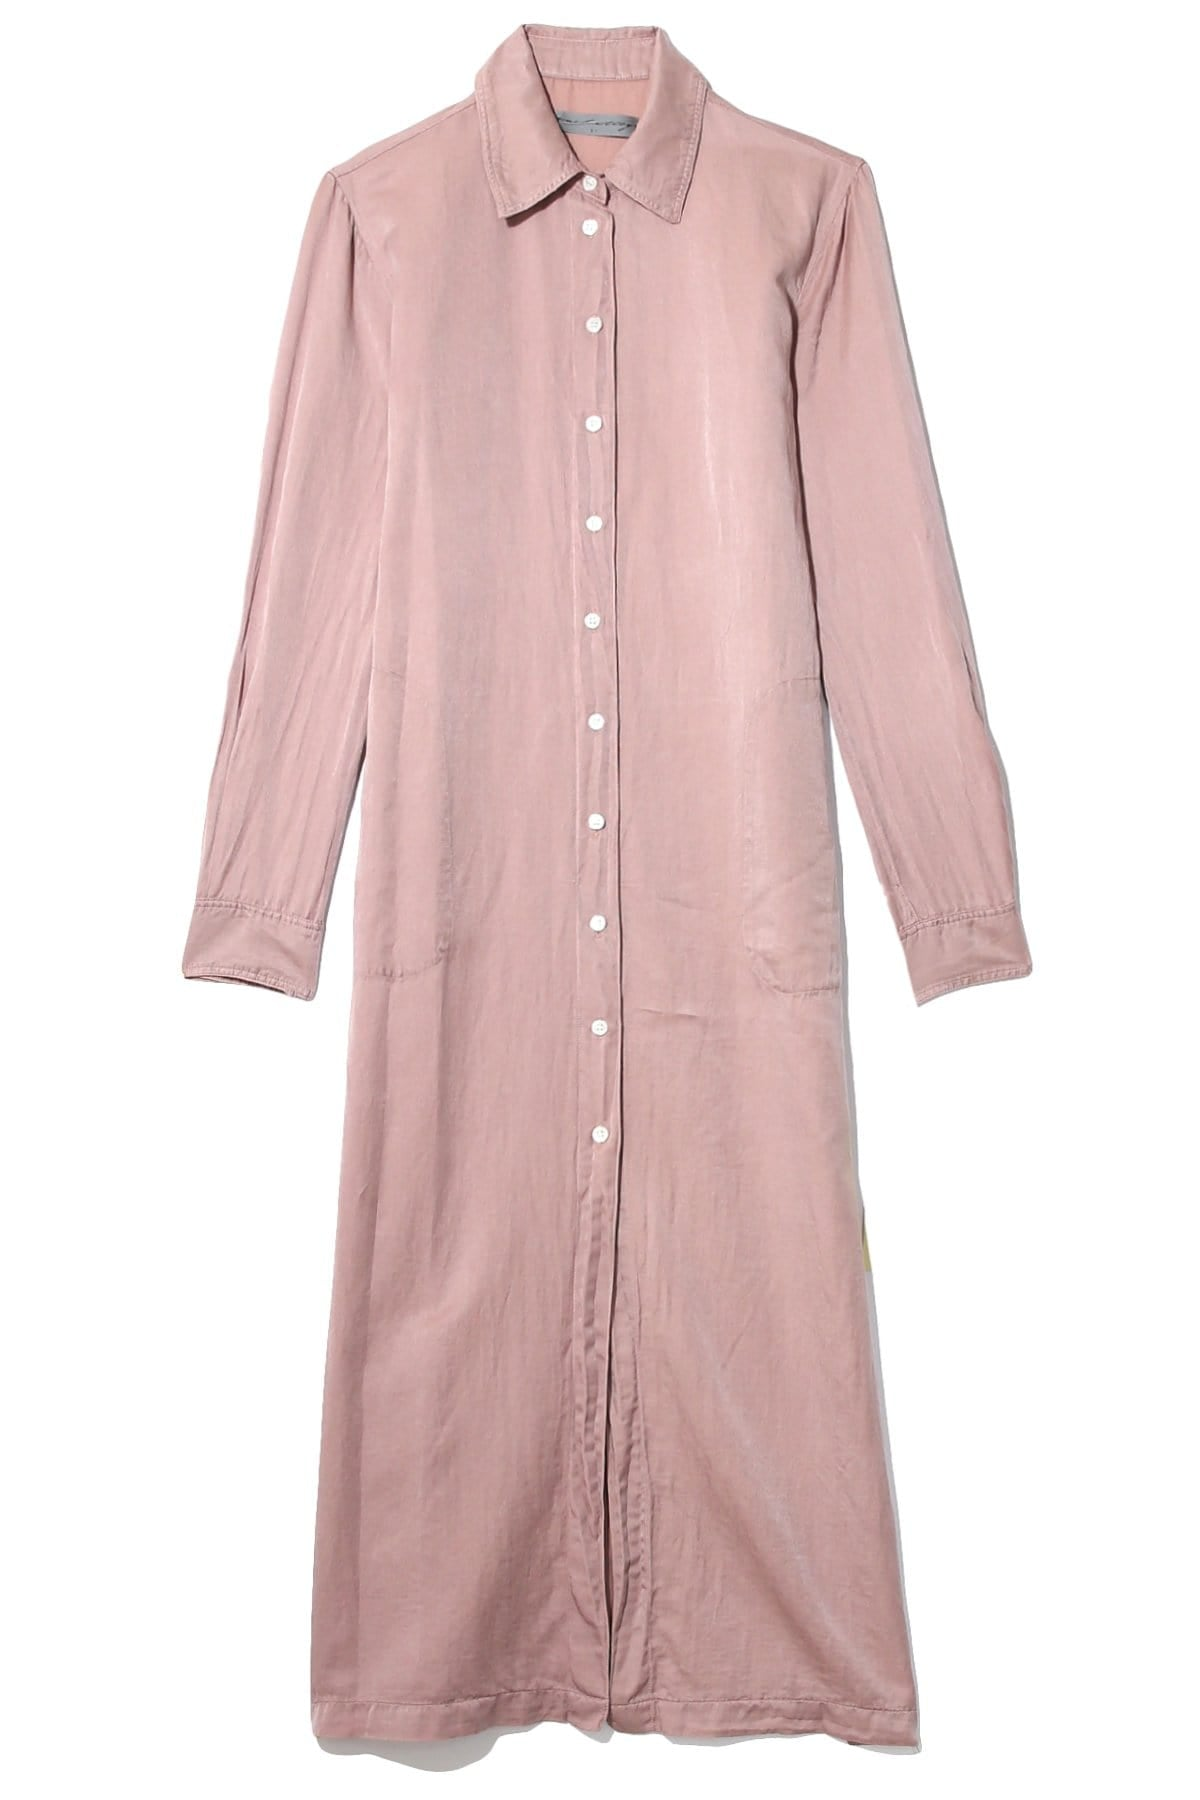 Collared Pocketed Button Front Tunic